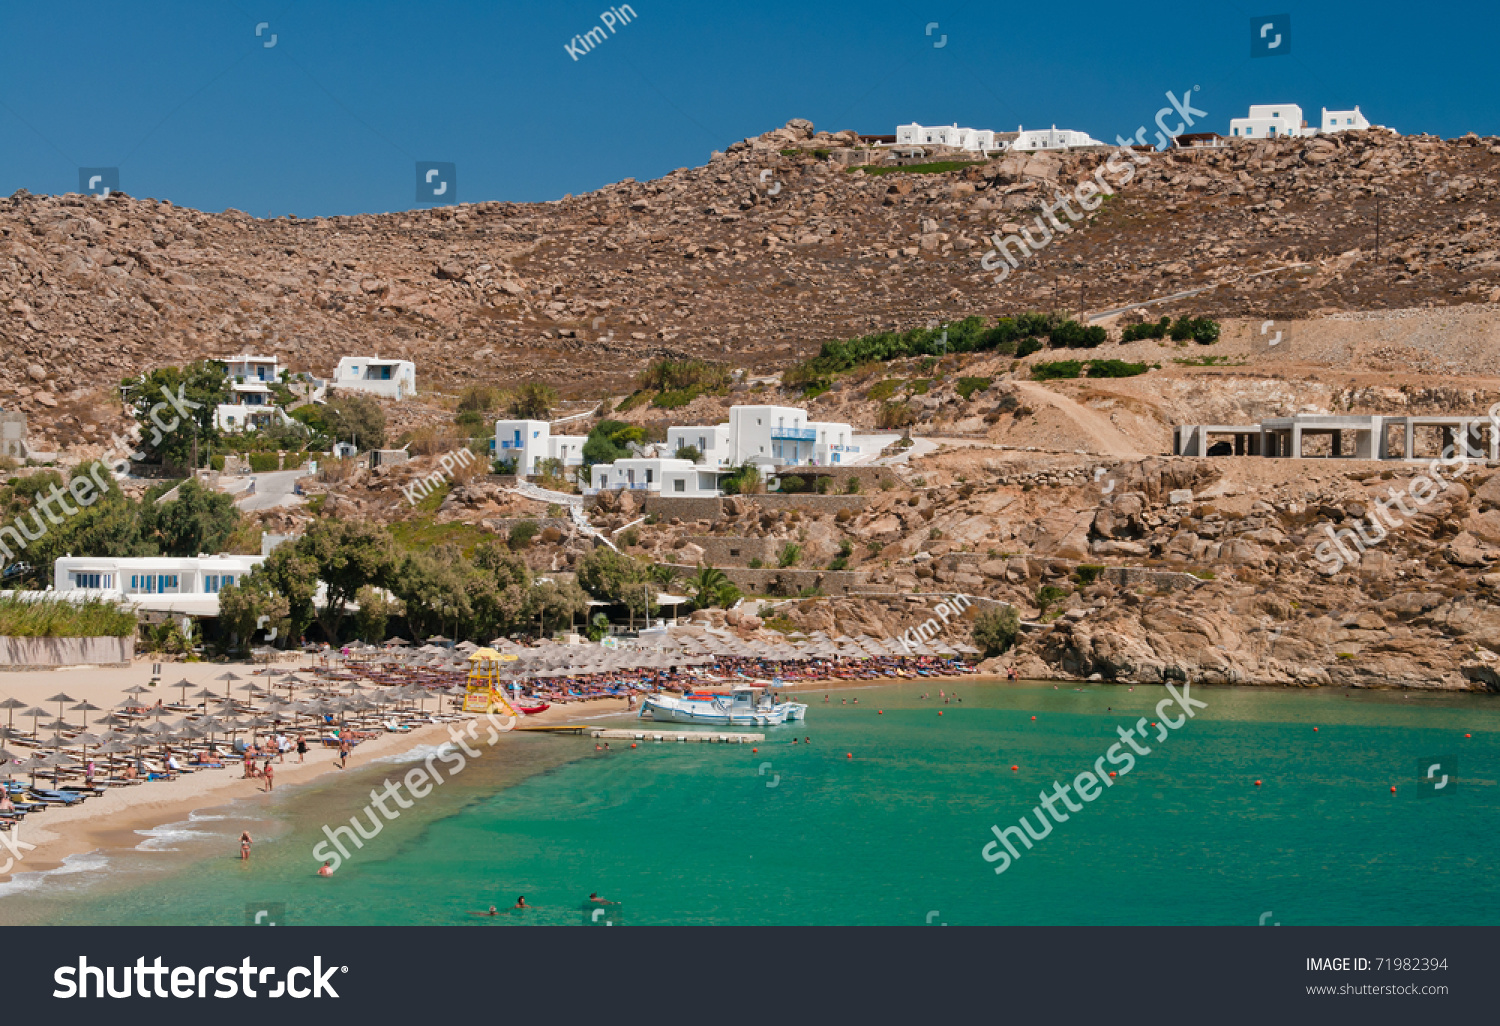 Best Island Beaches For Partying Mykonos St Barts: Super Paradise Beach Mykonos Greece Sunny Stock Photo